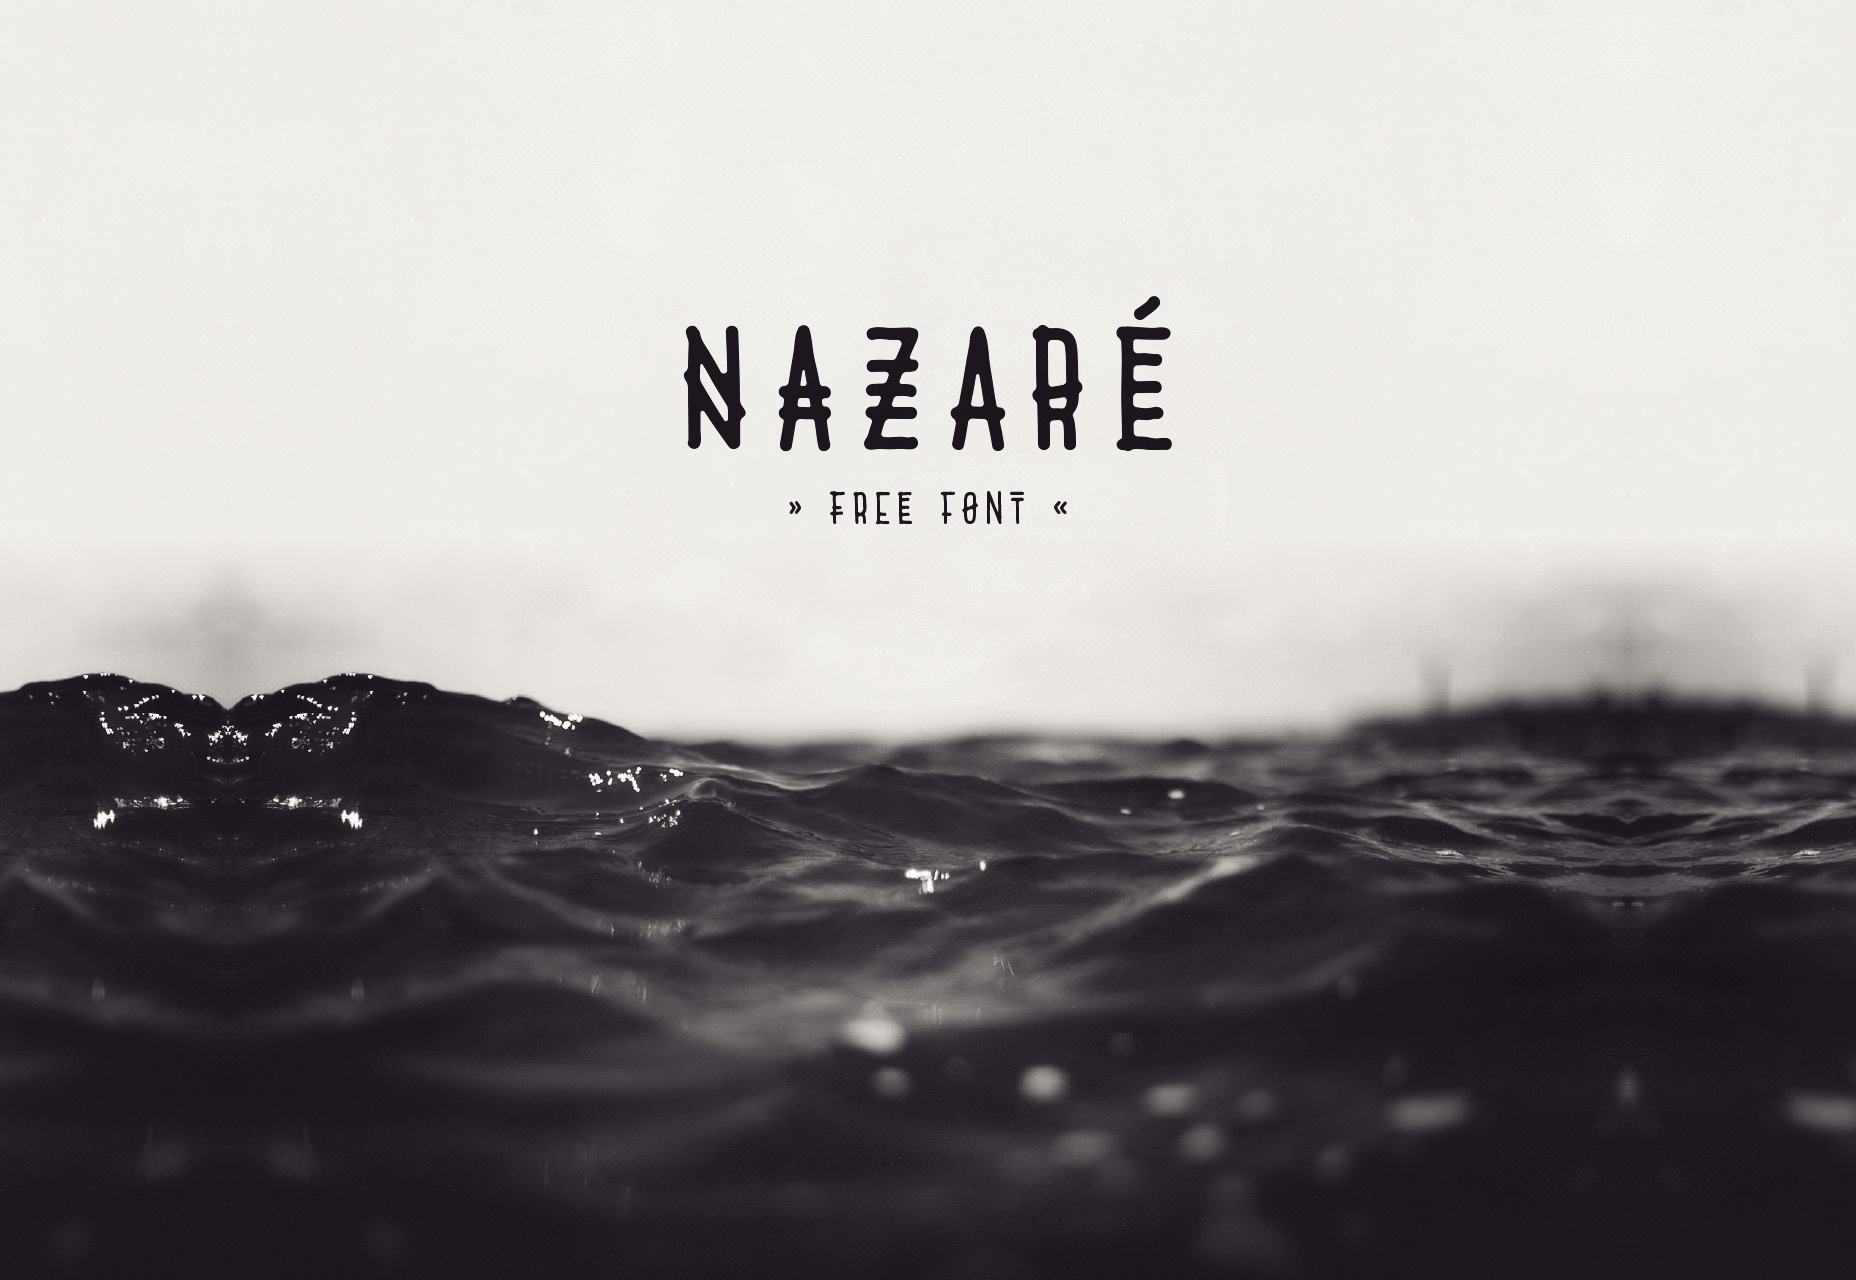 nazare-portugal-city-inspired-typeface